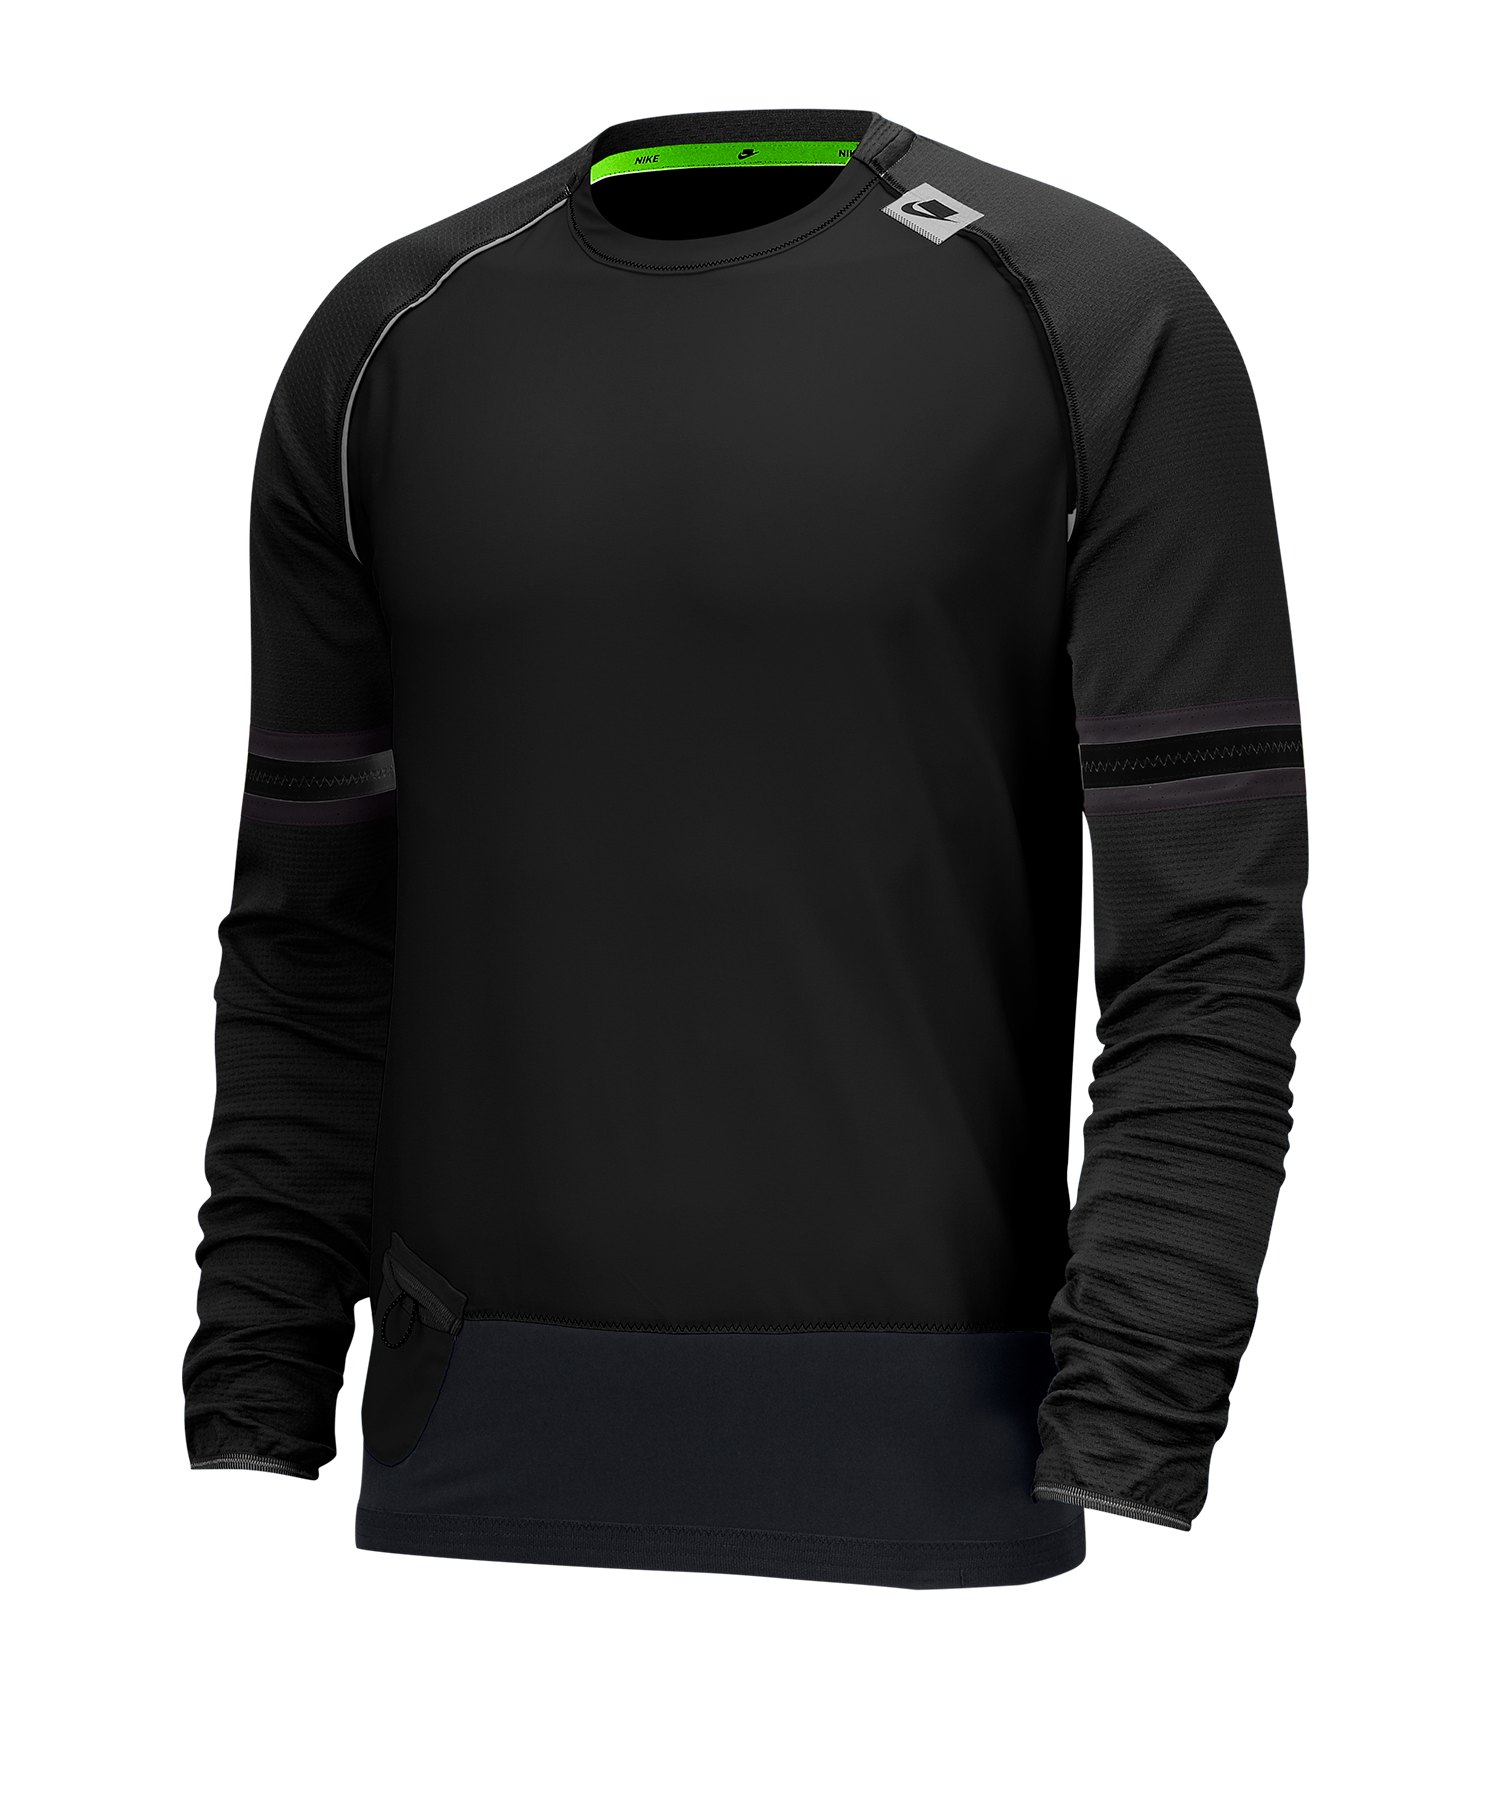 Nike Long-Sleeve Top T-Shirt langarm Running F010 - schwarz